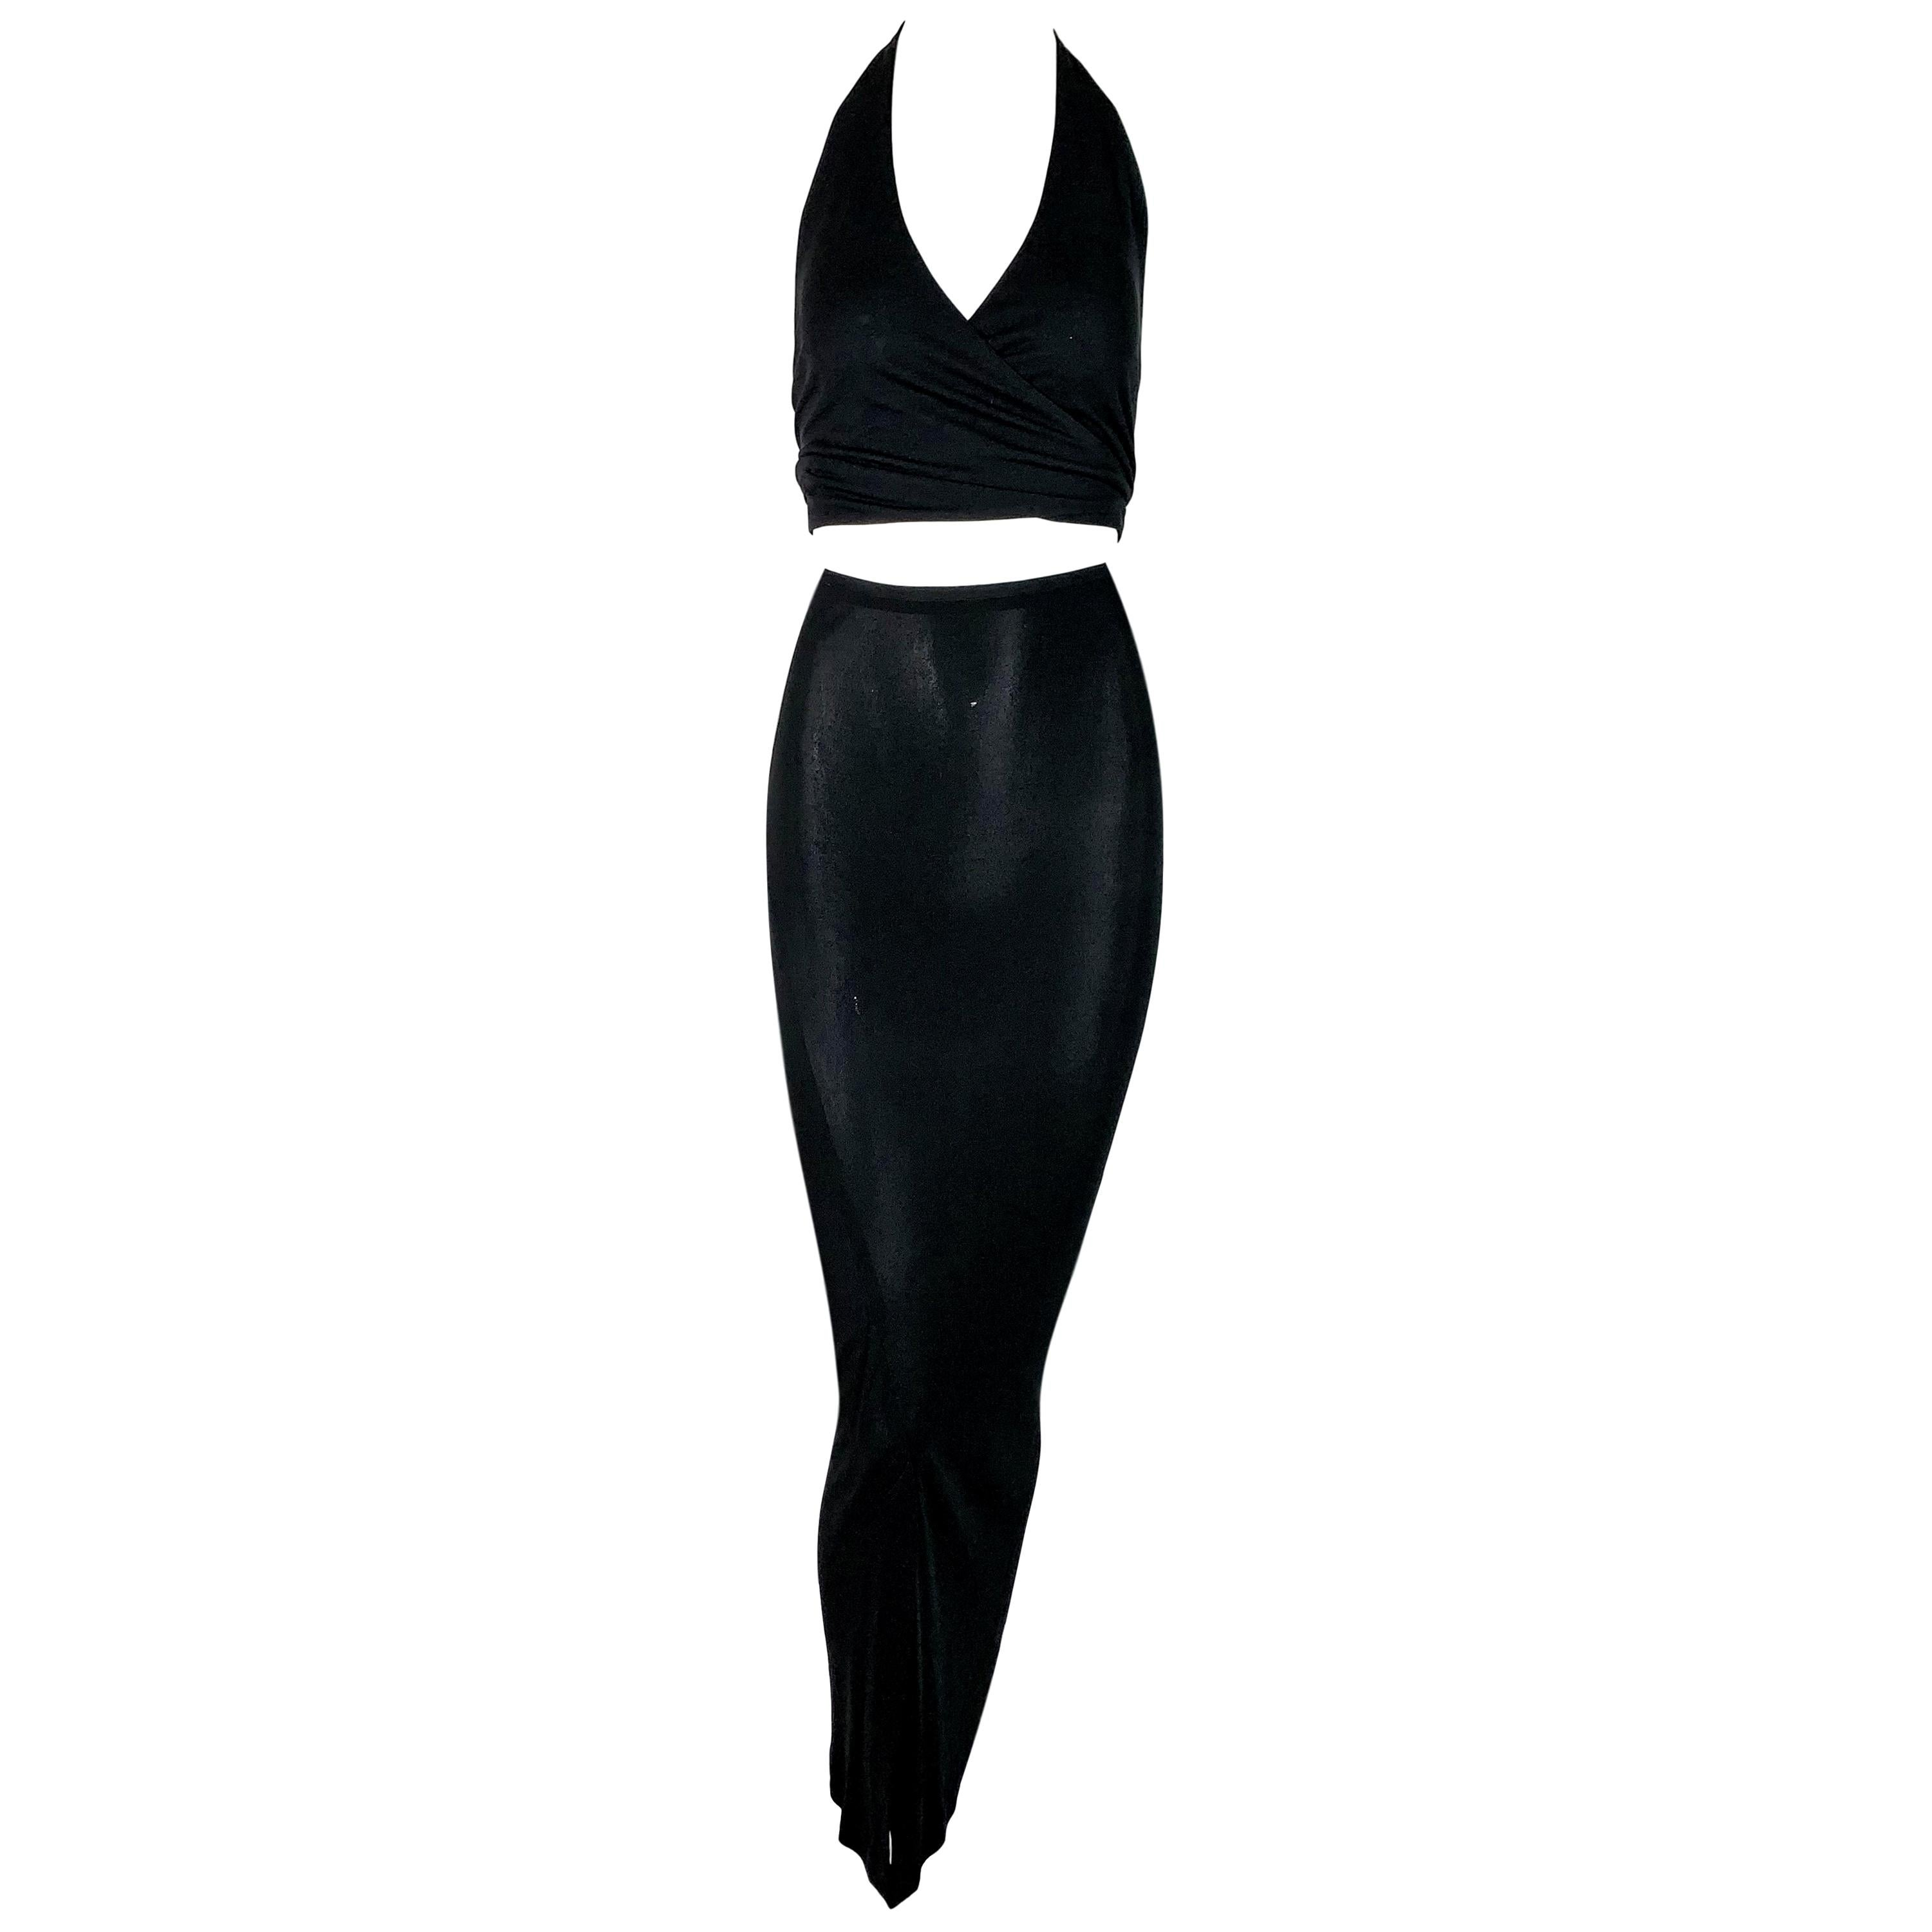 1997 Gucci by Tom Ford Sheer Black Wrap Crop Top & Long Wiggle Skirt Set